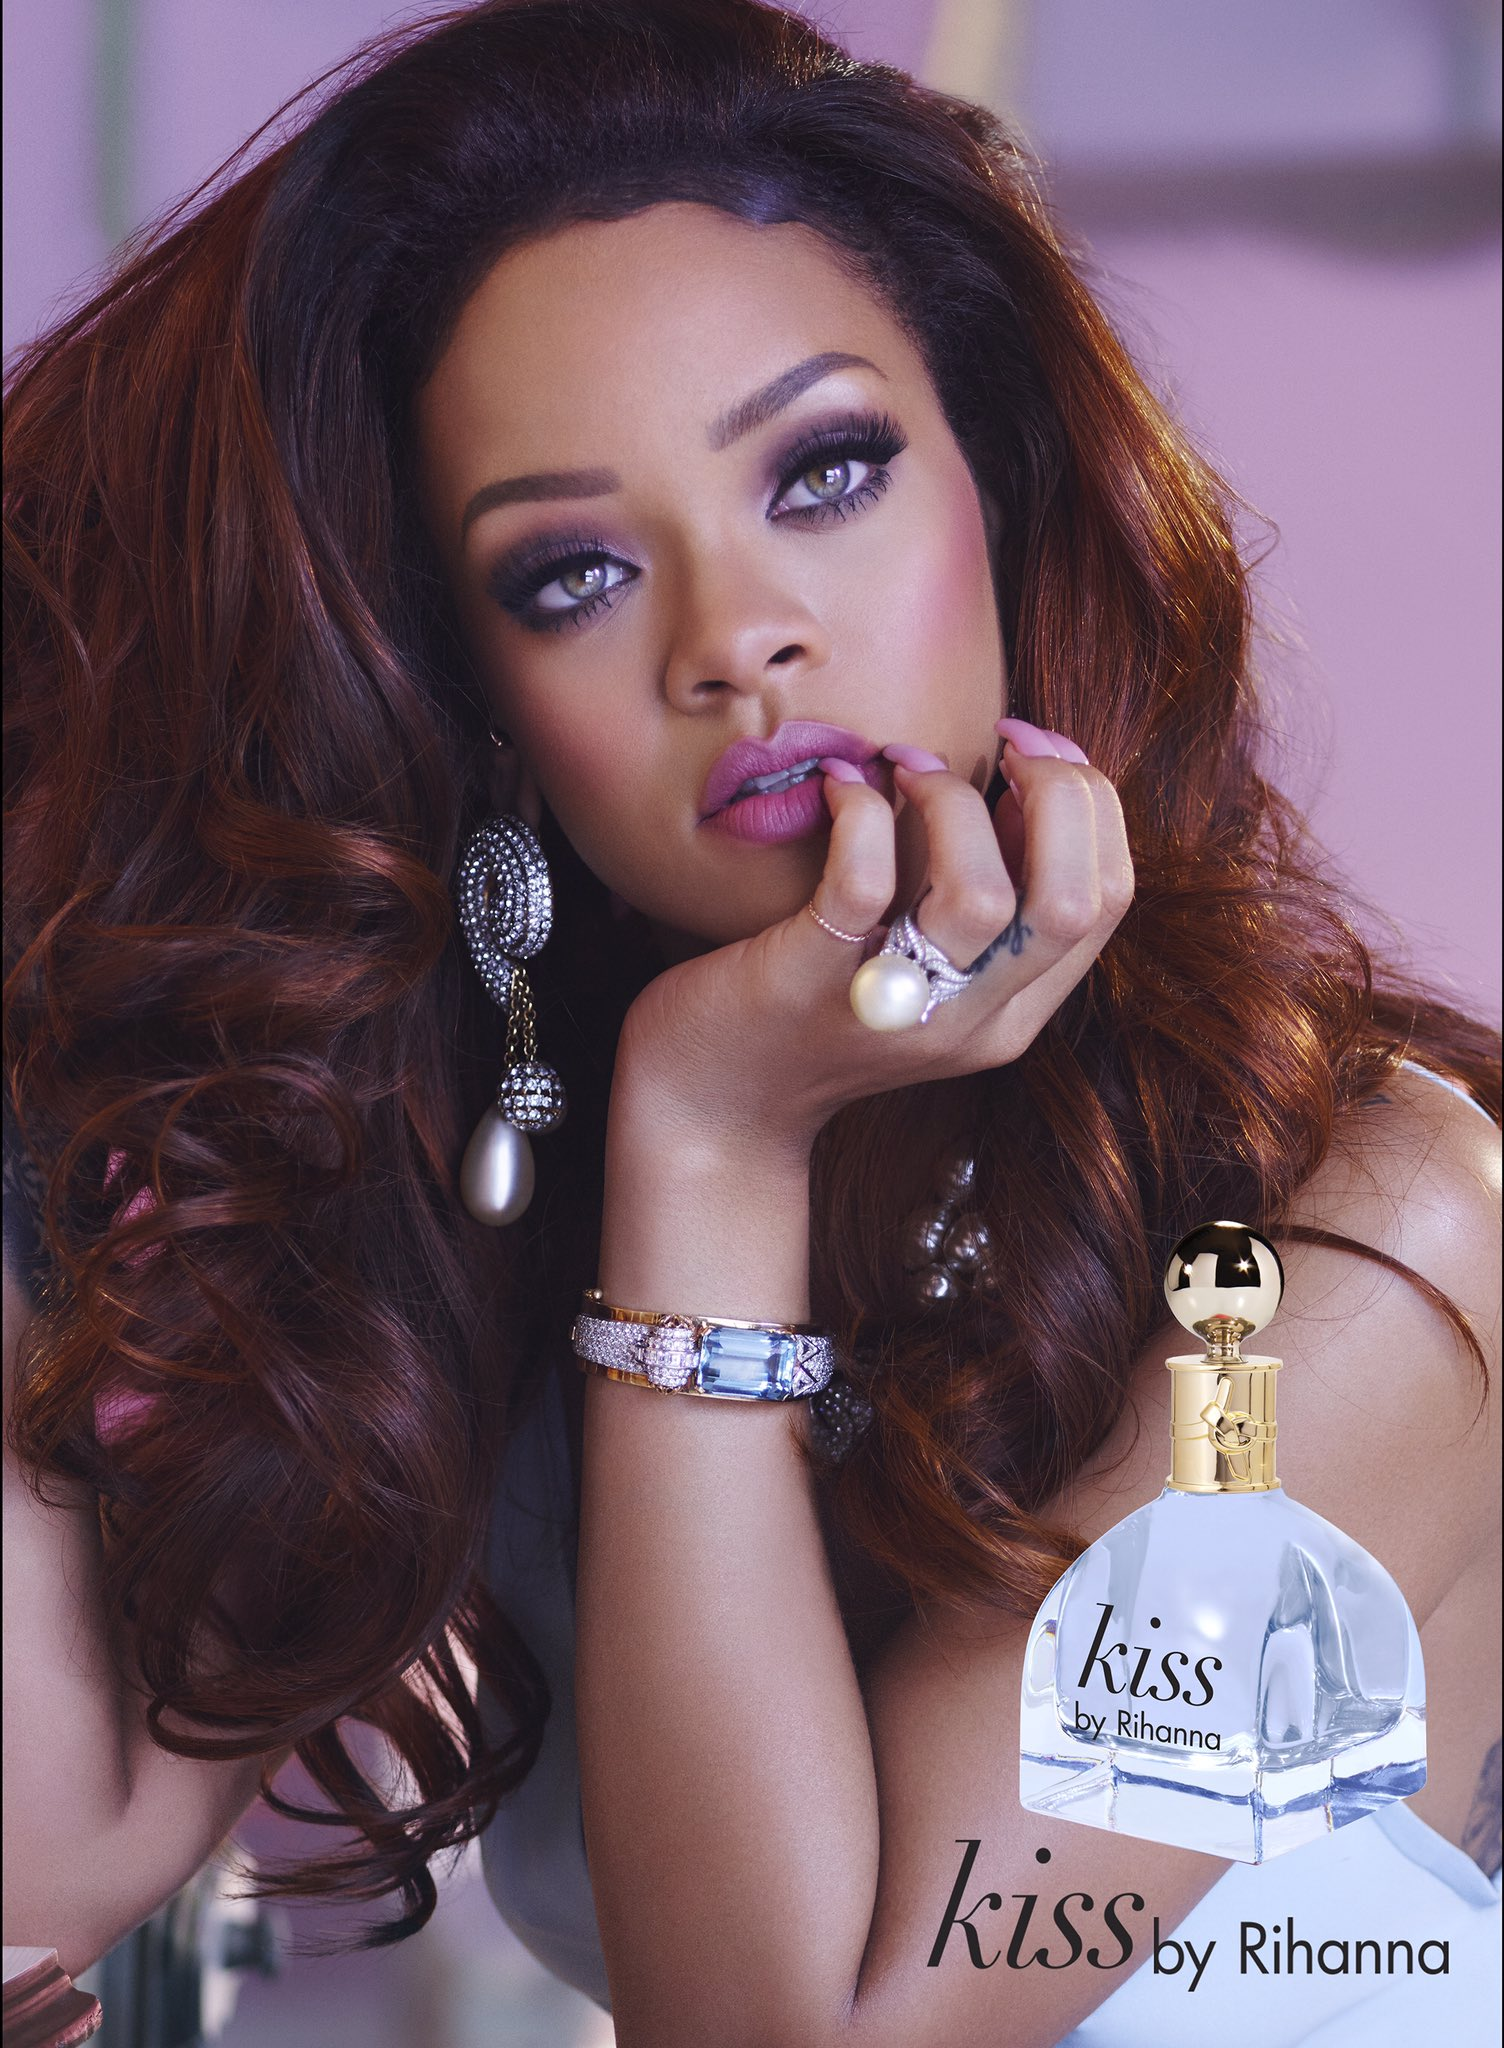 My new fragrance #RiRiKiss is available now, look for it @macys! Order it here —> https://t.co/mcj5k6a2L1 https://t.co/qWP0Kpbkuf